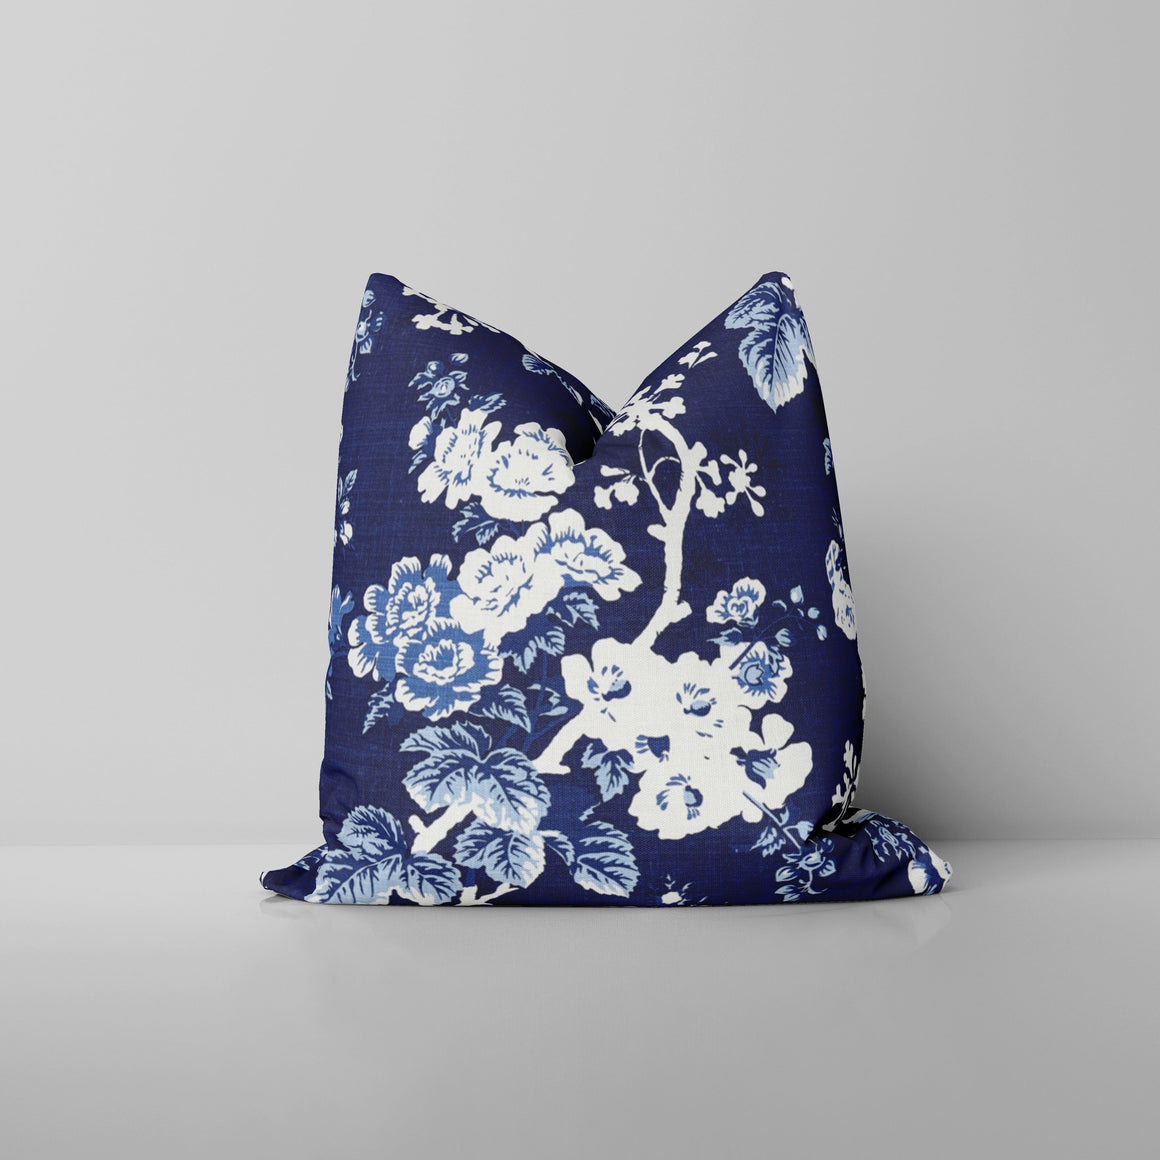 Ascot Floral Pillow Cover